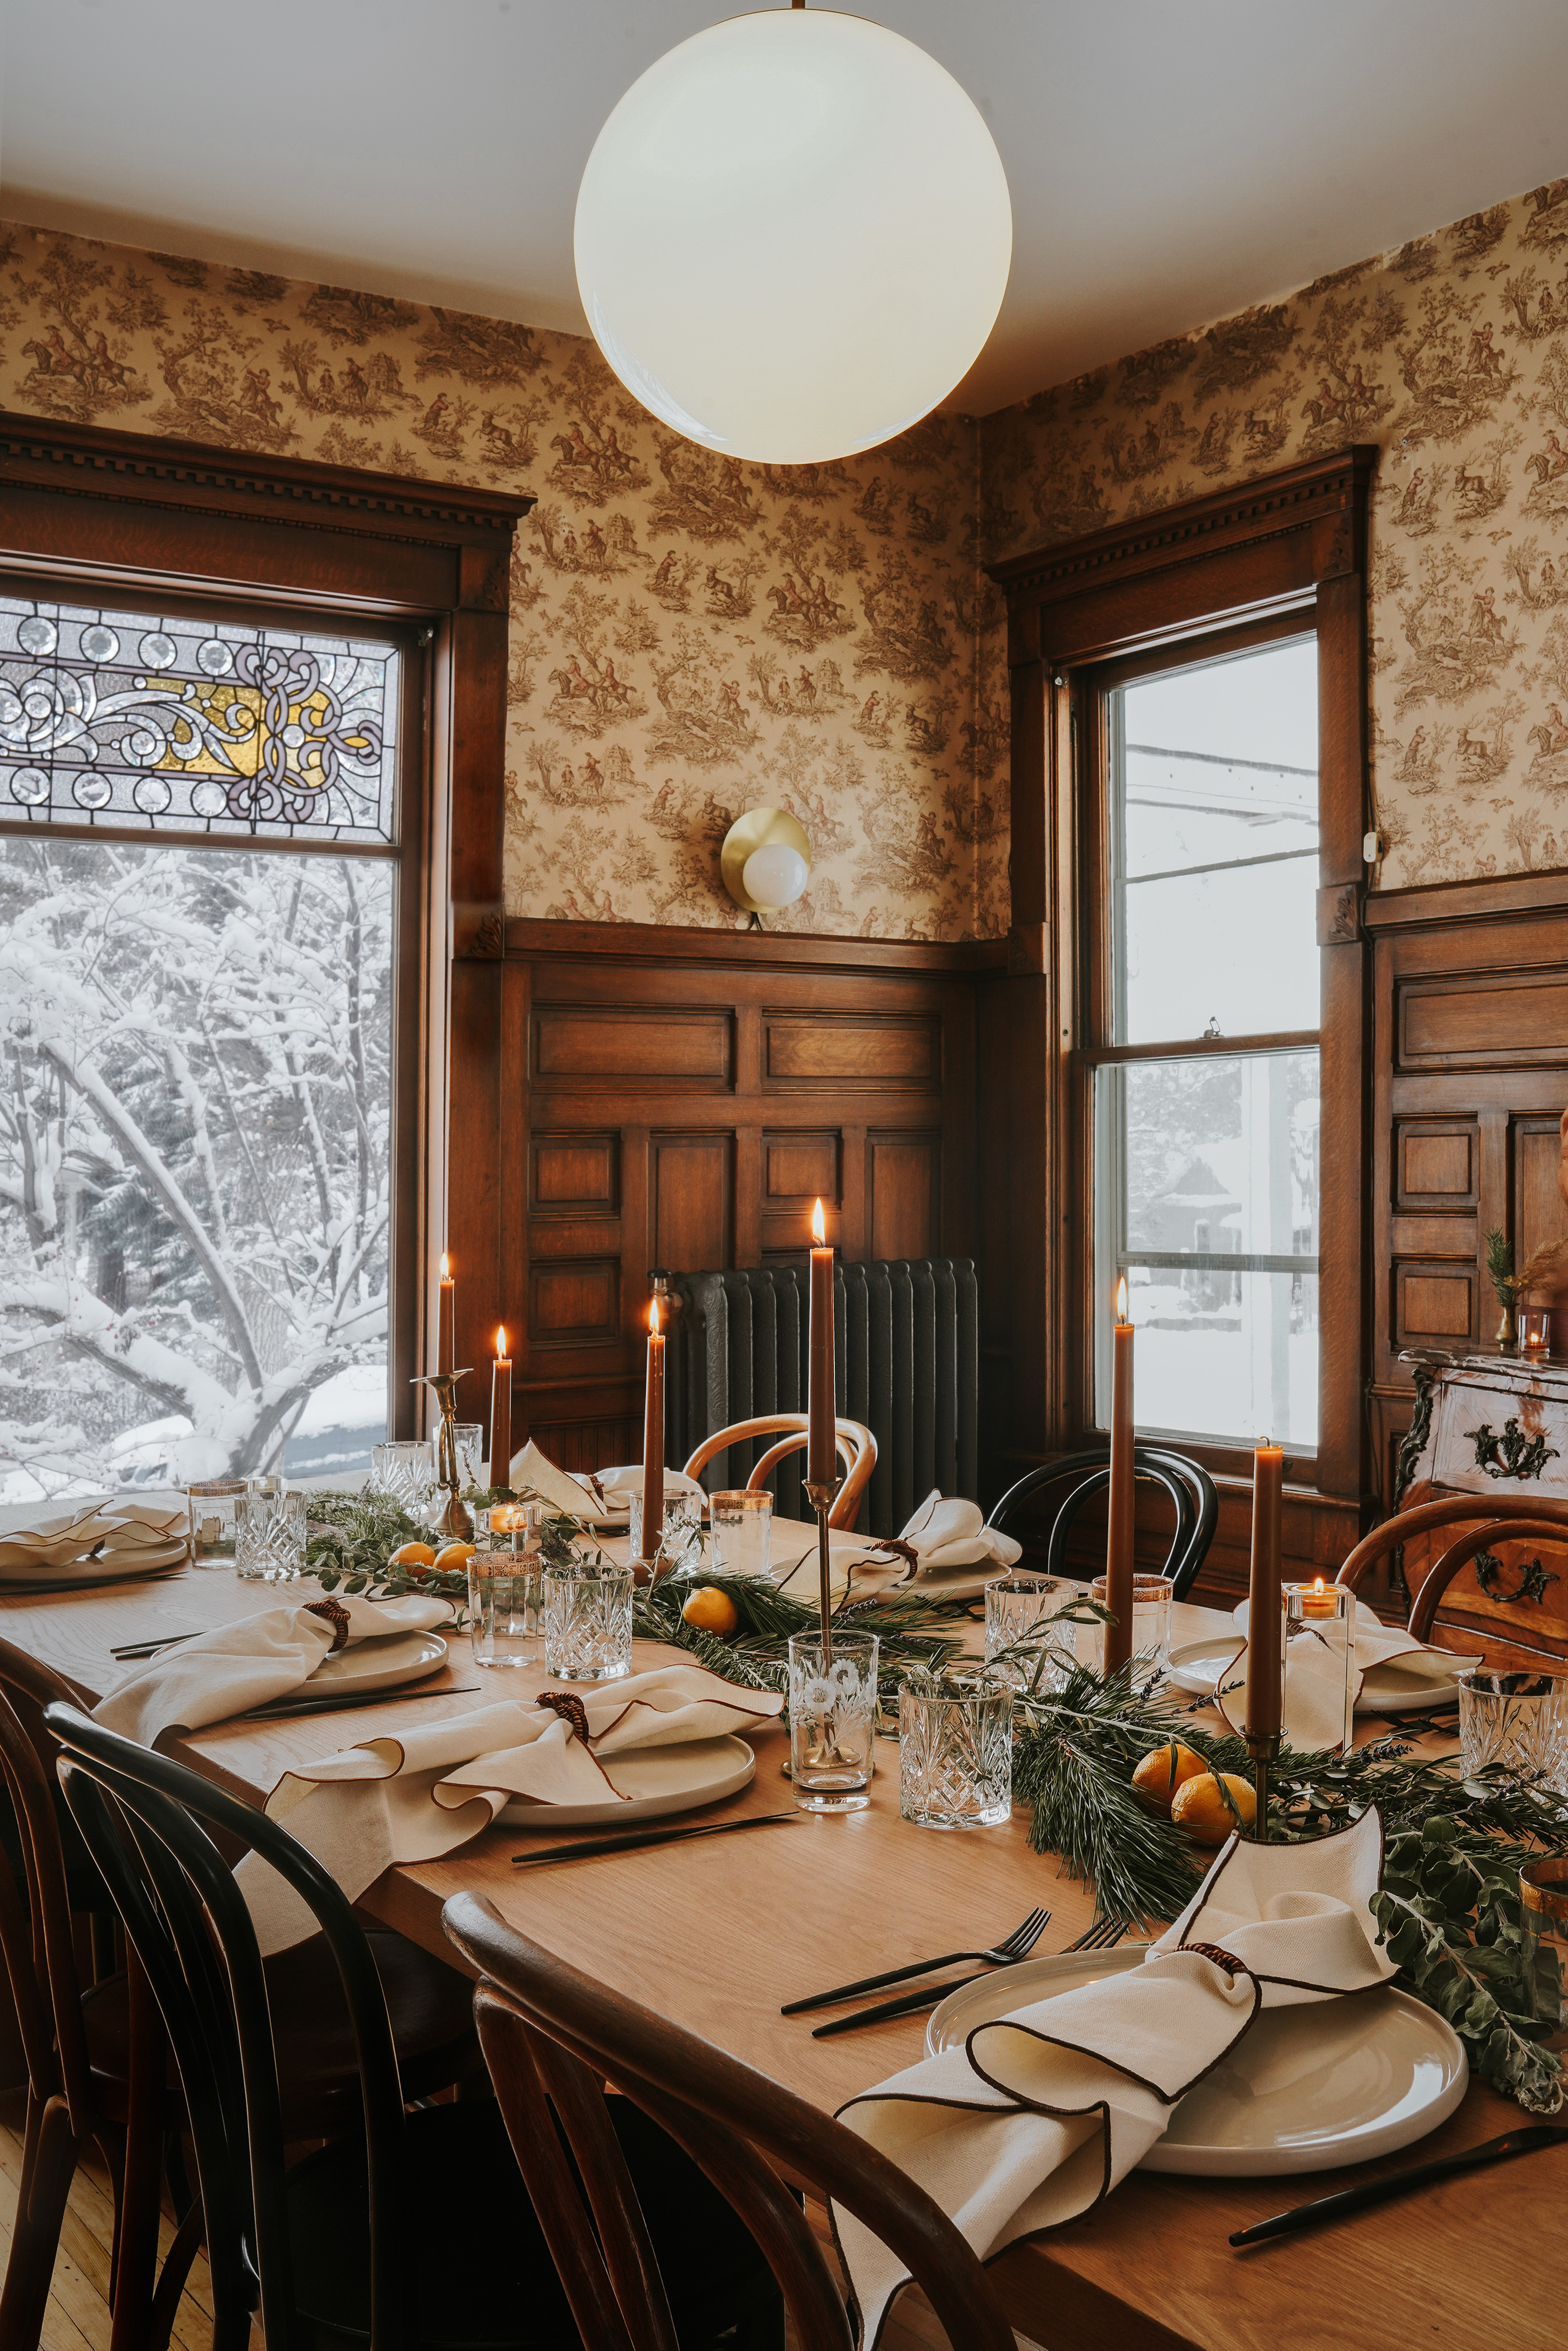 The rich history of this home is visibly present in the dining room. Green Seam Designs Custom Dining Table; Vintage Bentwood Chairs; Cedar & Moss Wall Sconce; Original Wallpaper; Afloral Candle Holders; The Floral Society Candles; West Elm Plates; Waterford Crystal Tumblers; CB2 Cutlery; Atelier Saucier for The Weavers Studio Napkins; Sequence Collection for The Weavers Studio Napkin Rings.